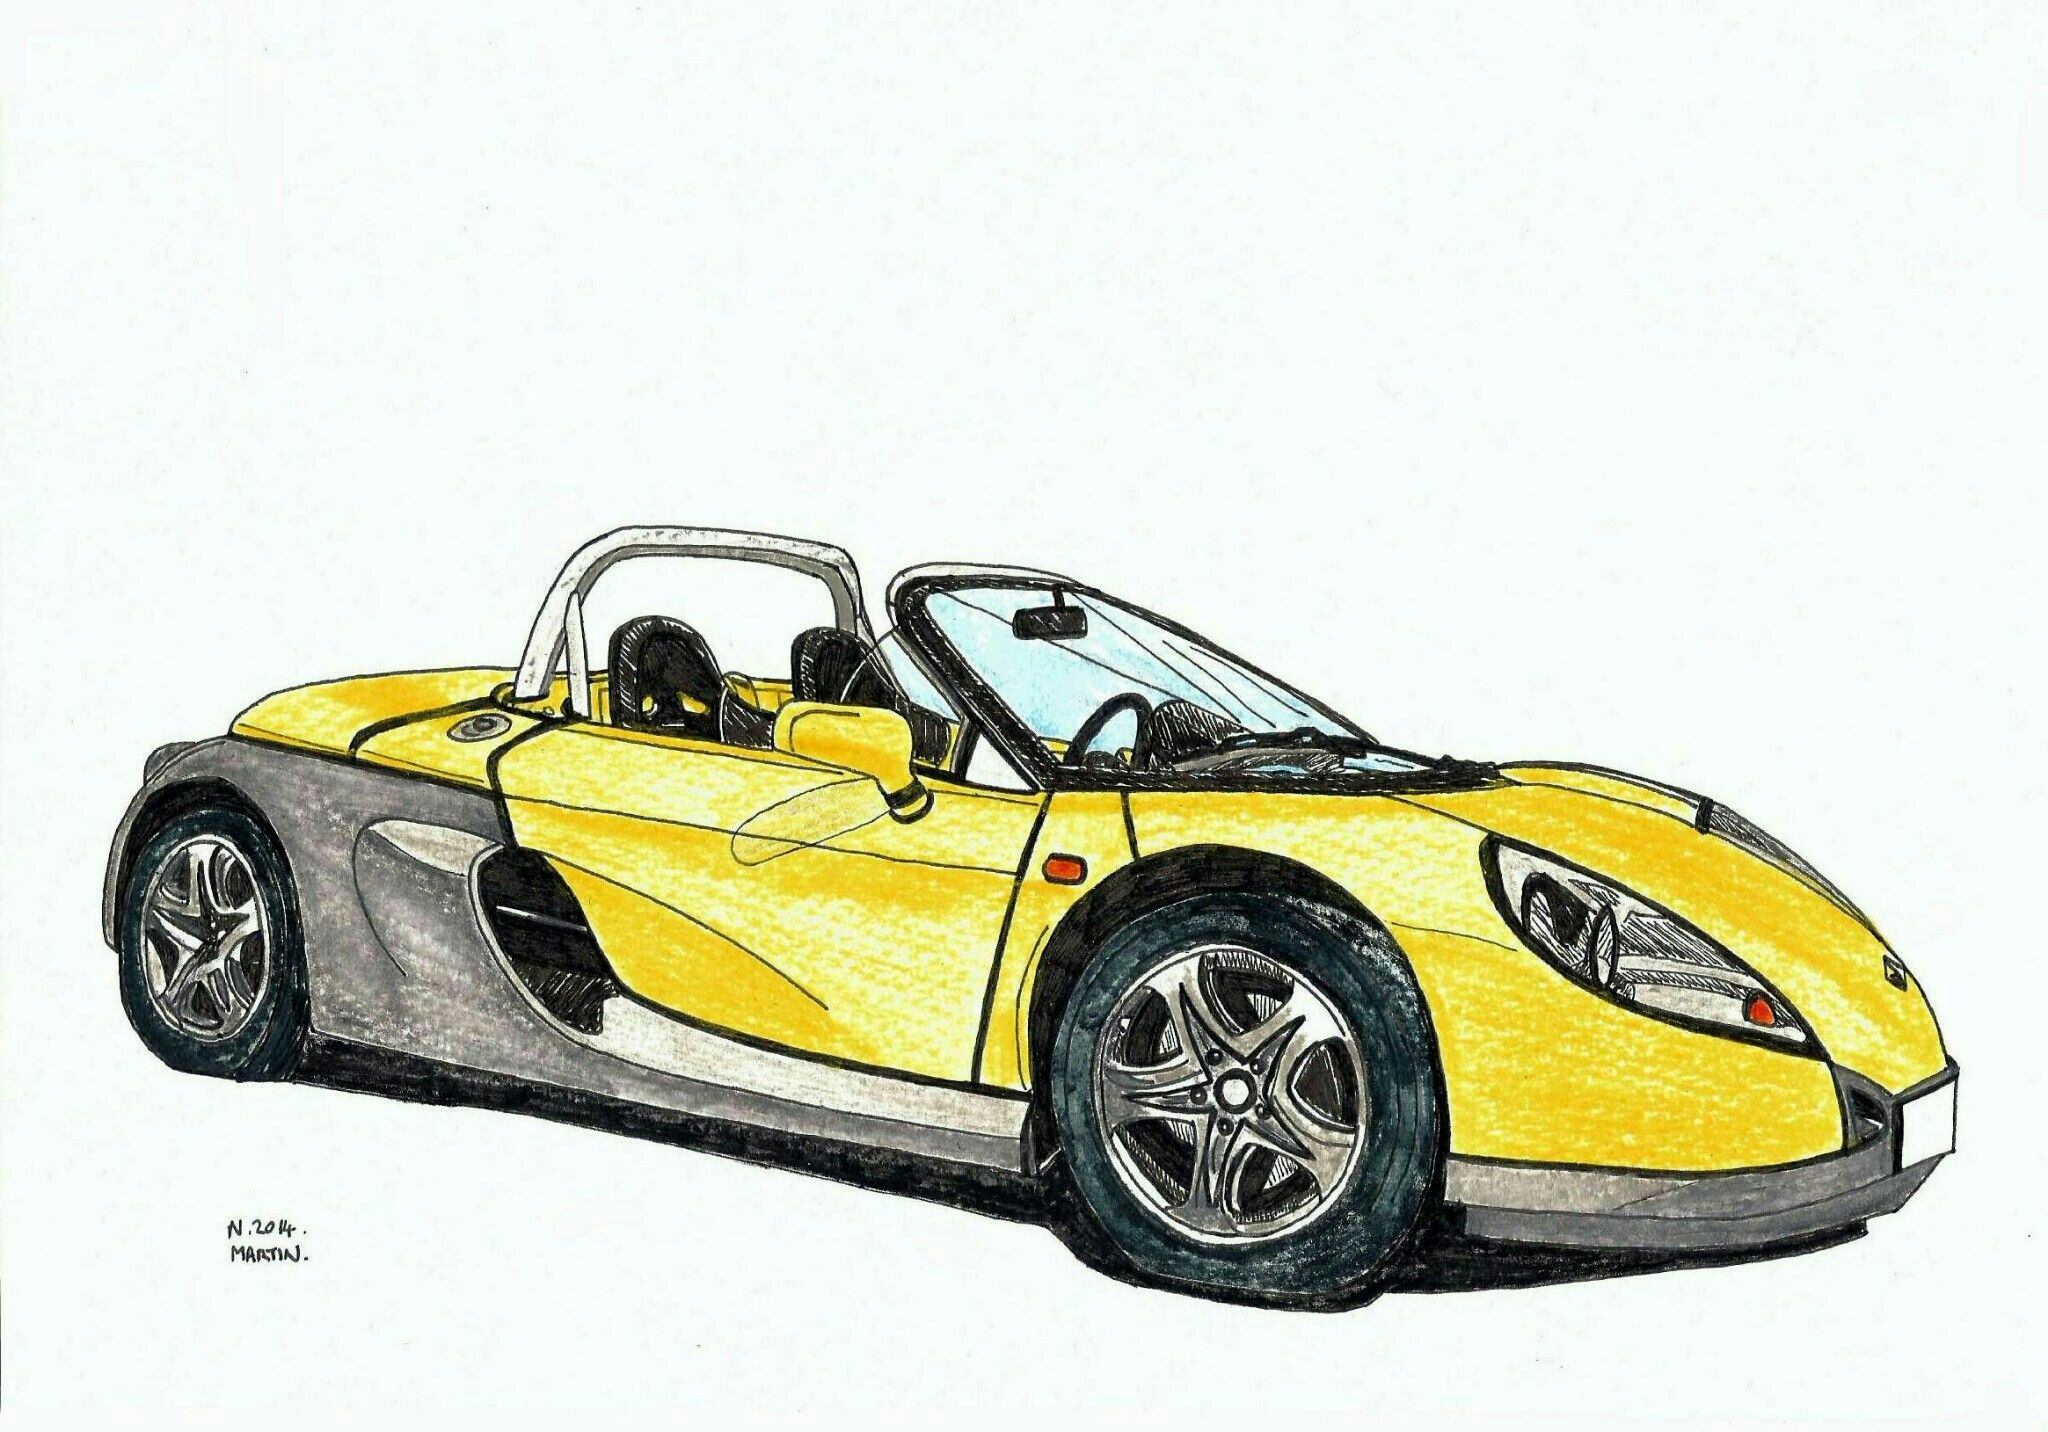 2048x1432 renault sport spider drawing my drawing of a renault sport spider